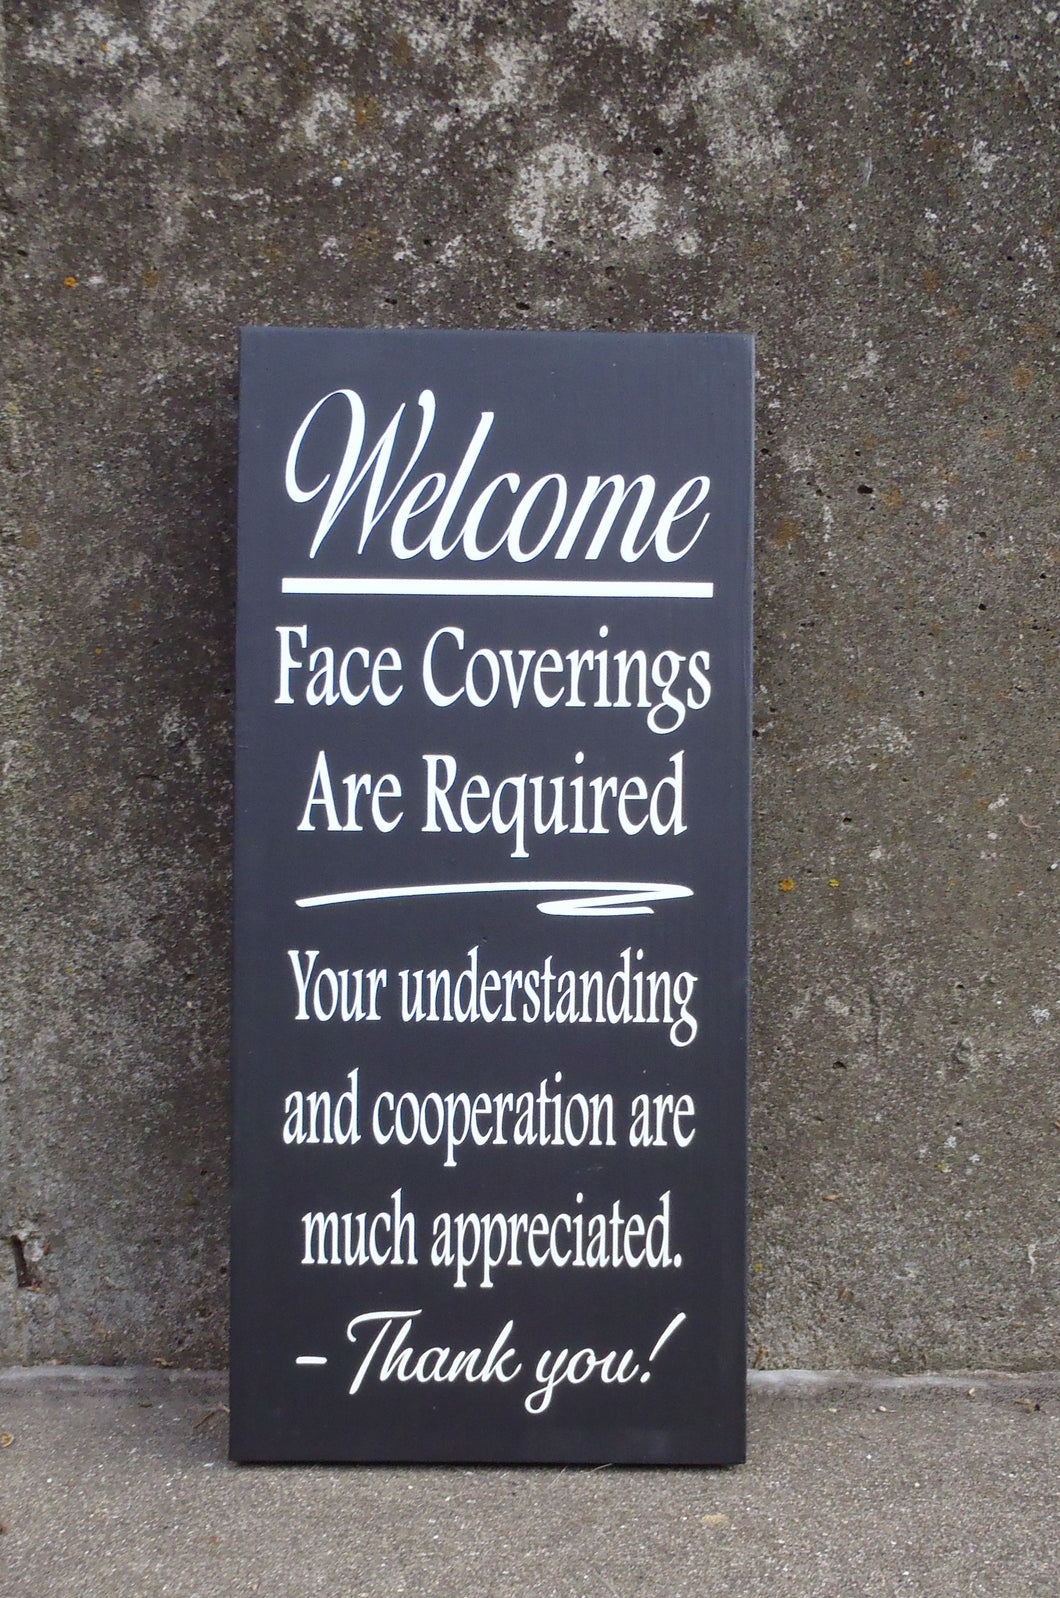 Mask Face Covering Required Wood Vinyl Wall Sign - Heartfelt Giver